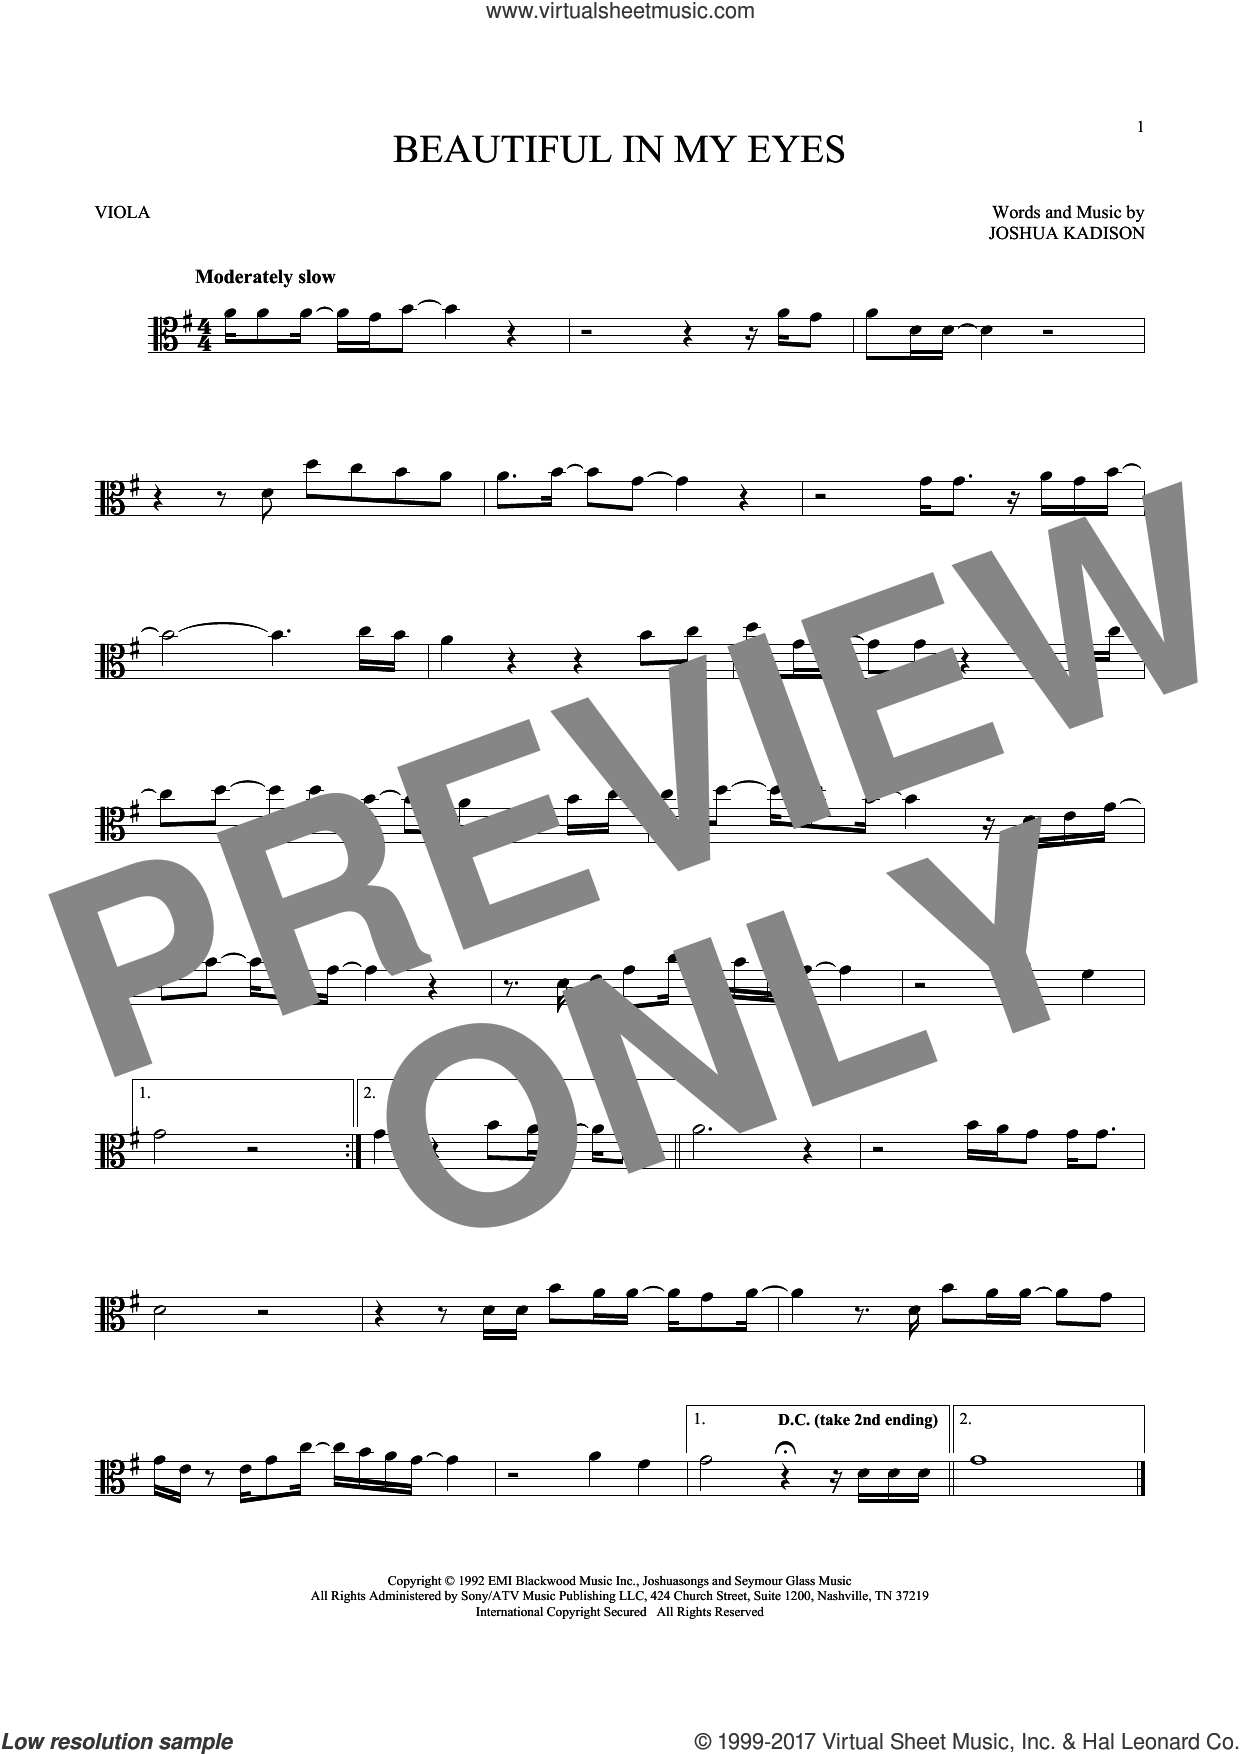 Beautiful In My Eyes sheet music for viola solo by Joshua Kadison, intermediate skill level